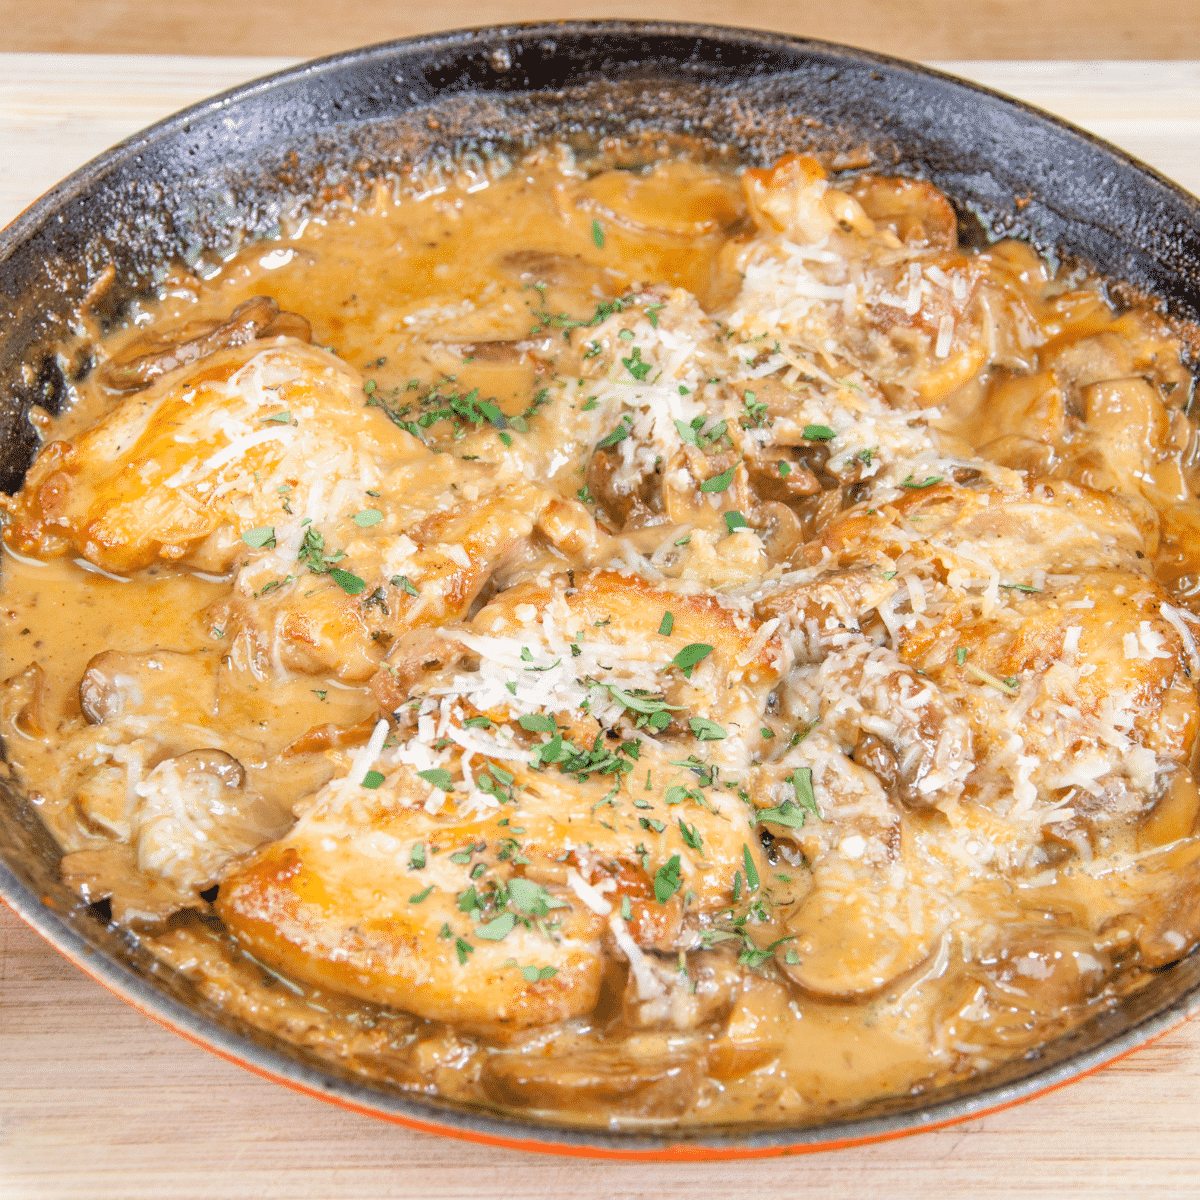 Creamy sherry and thyme chicken thighs. A wonderfully mouthwatering and delicious recipe. Add in wild mushrooms and you have one very special dish. Yum! | theyumyumclub.com